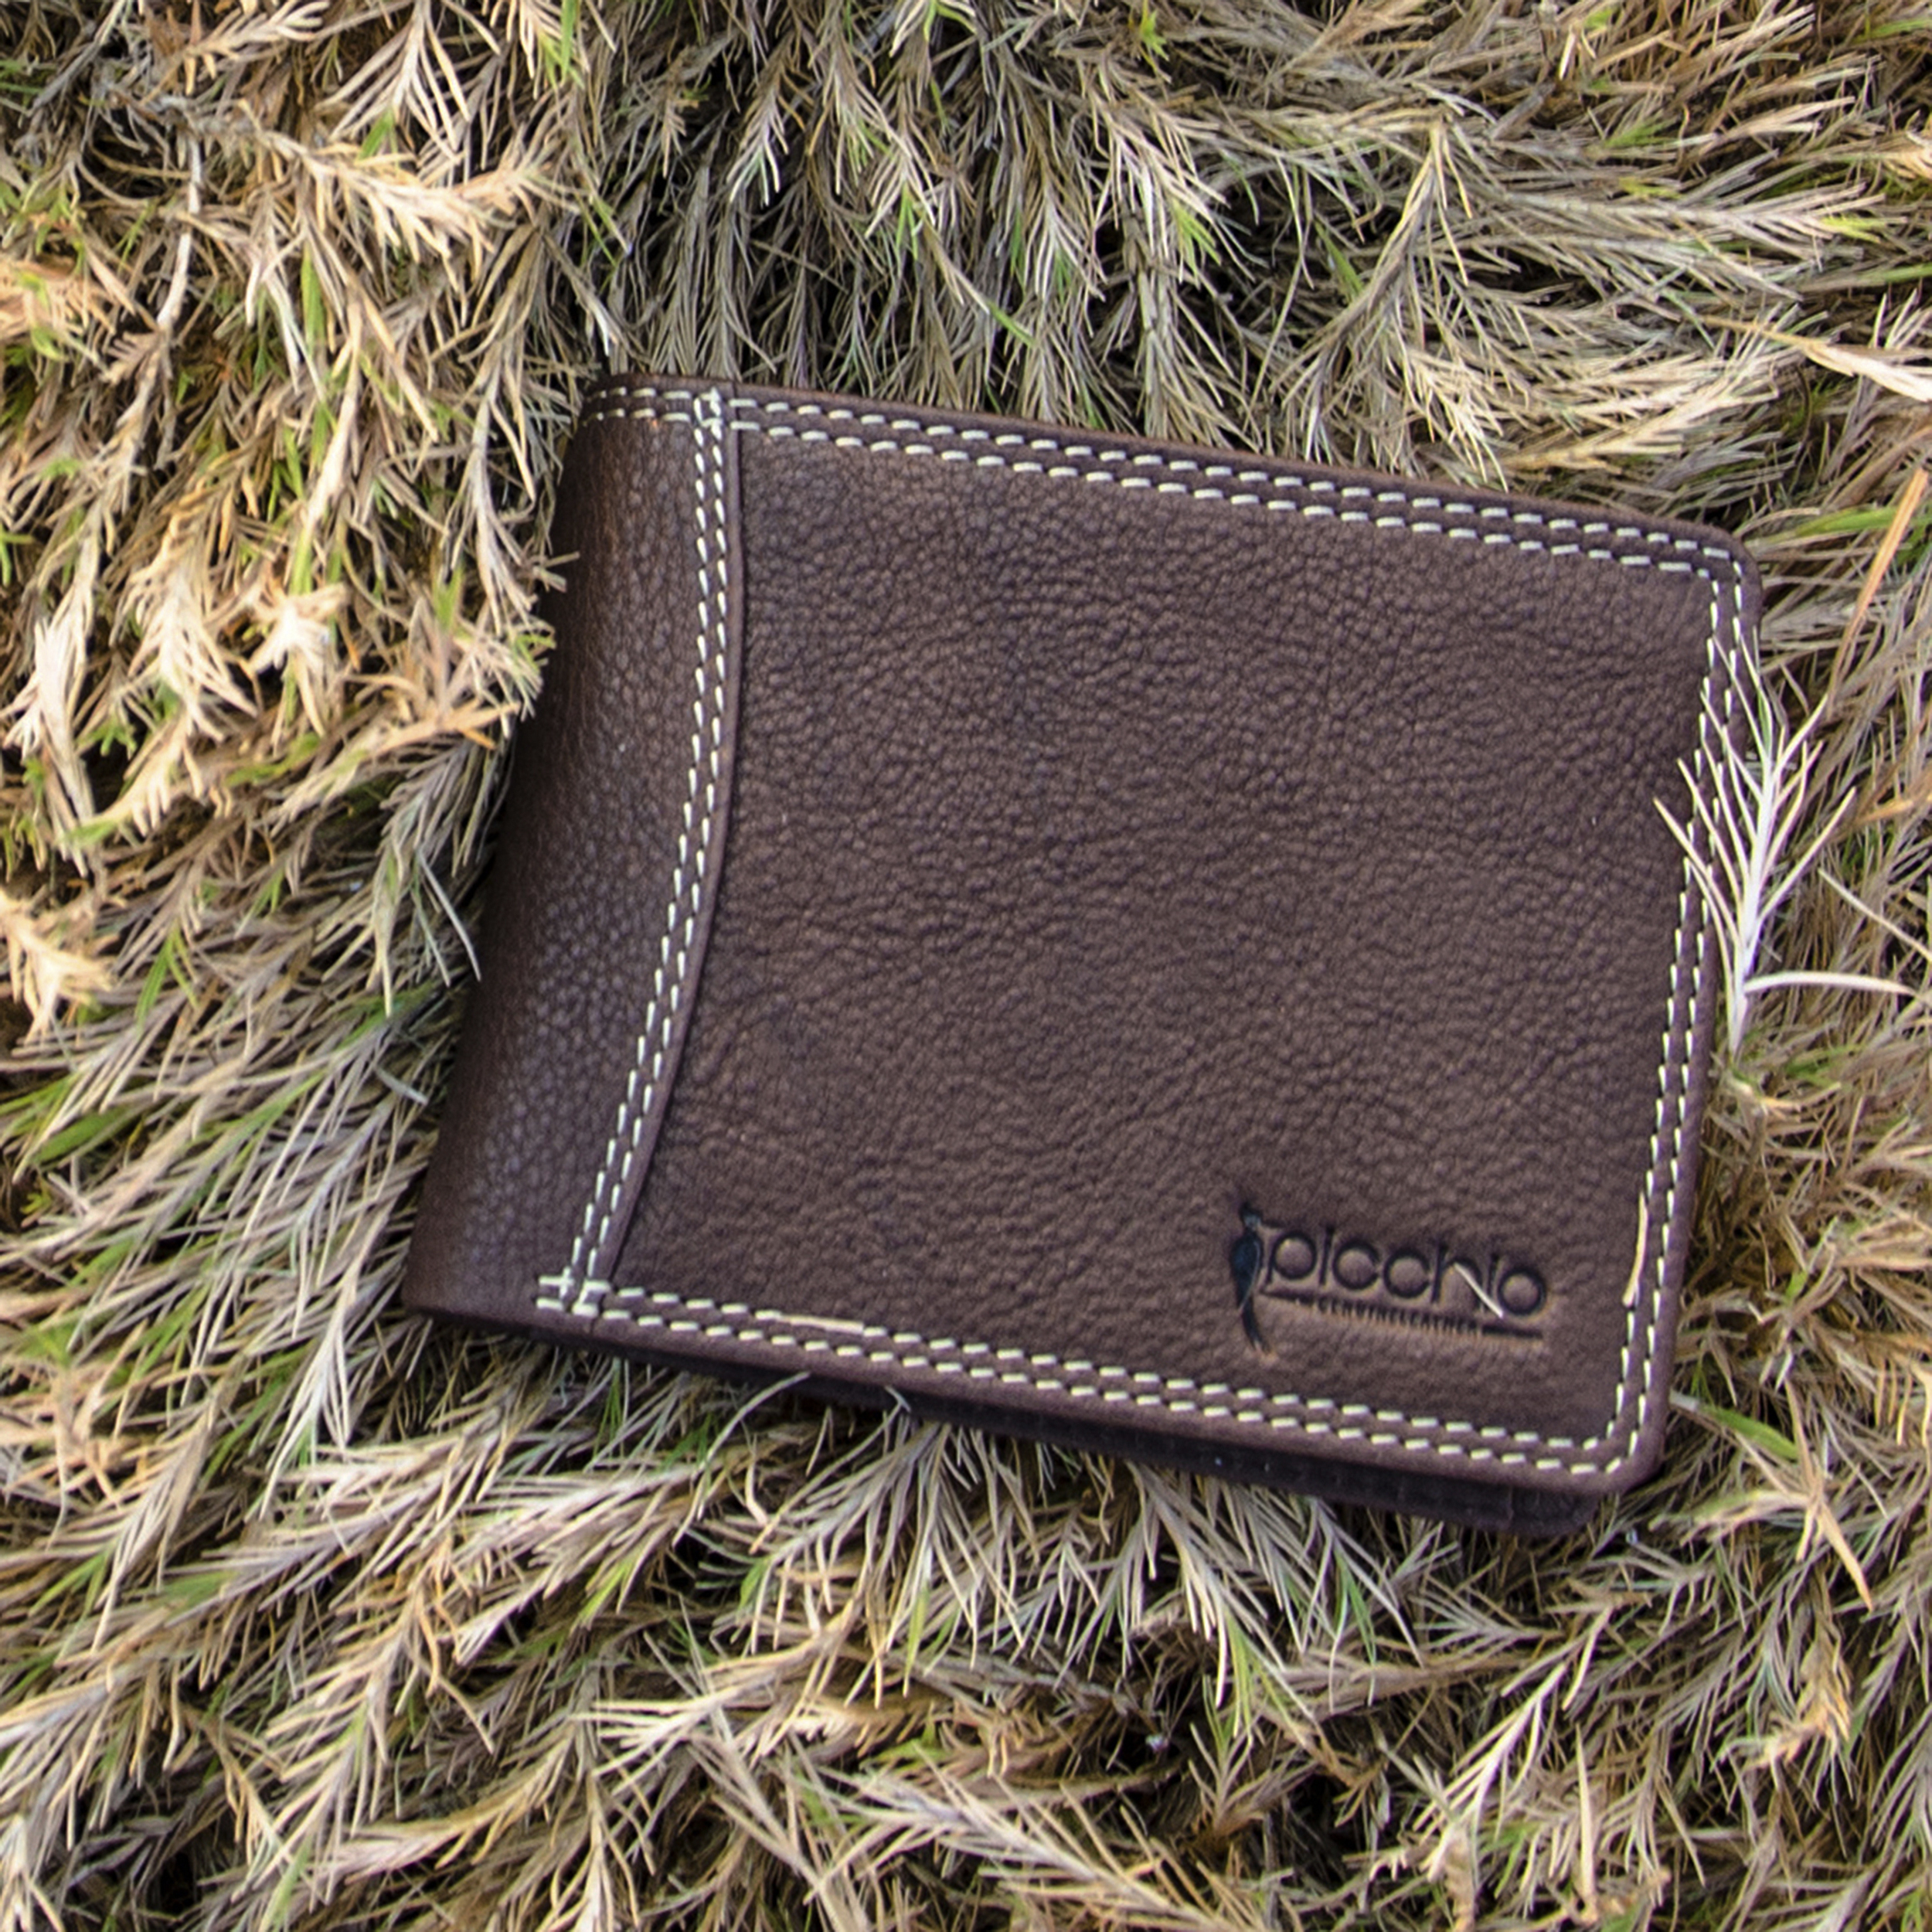 wallet photography 3 croped 2500 pixels